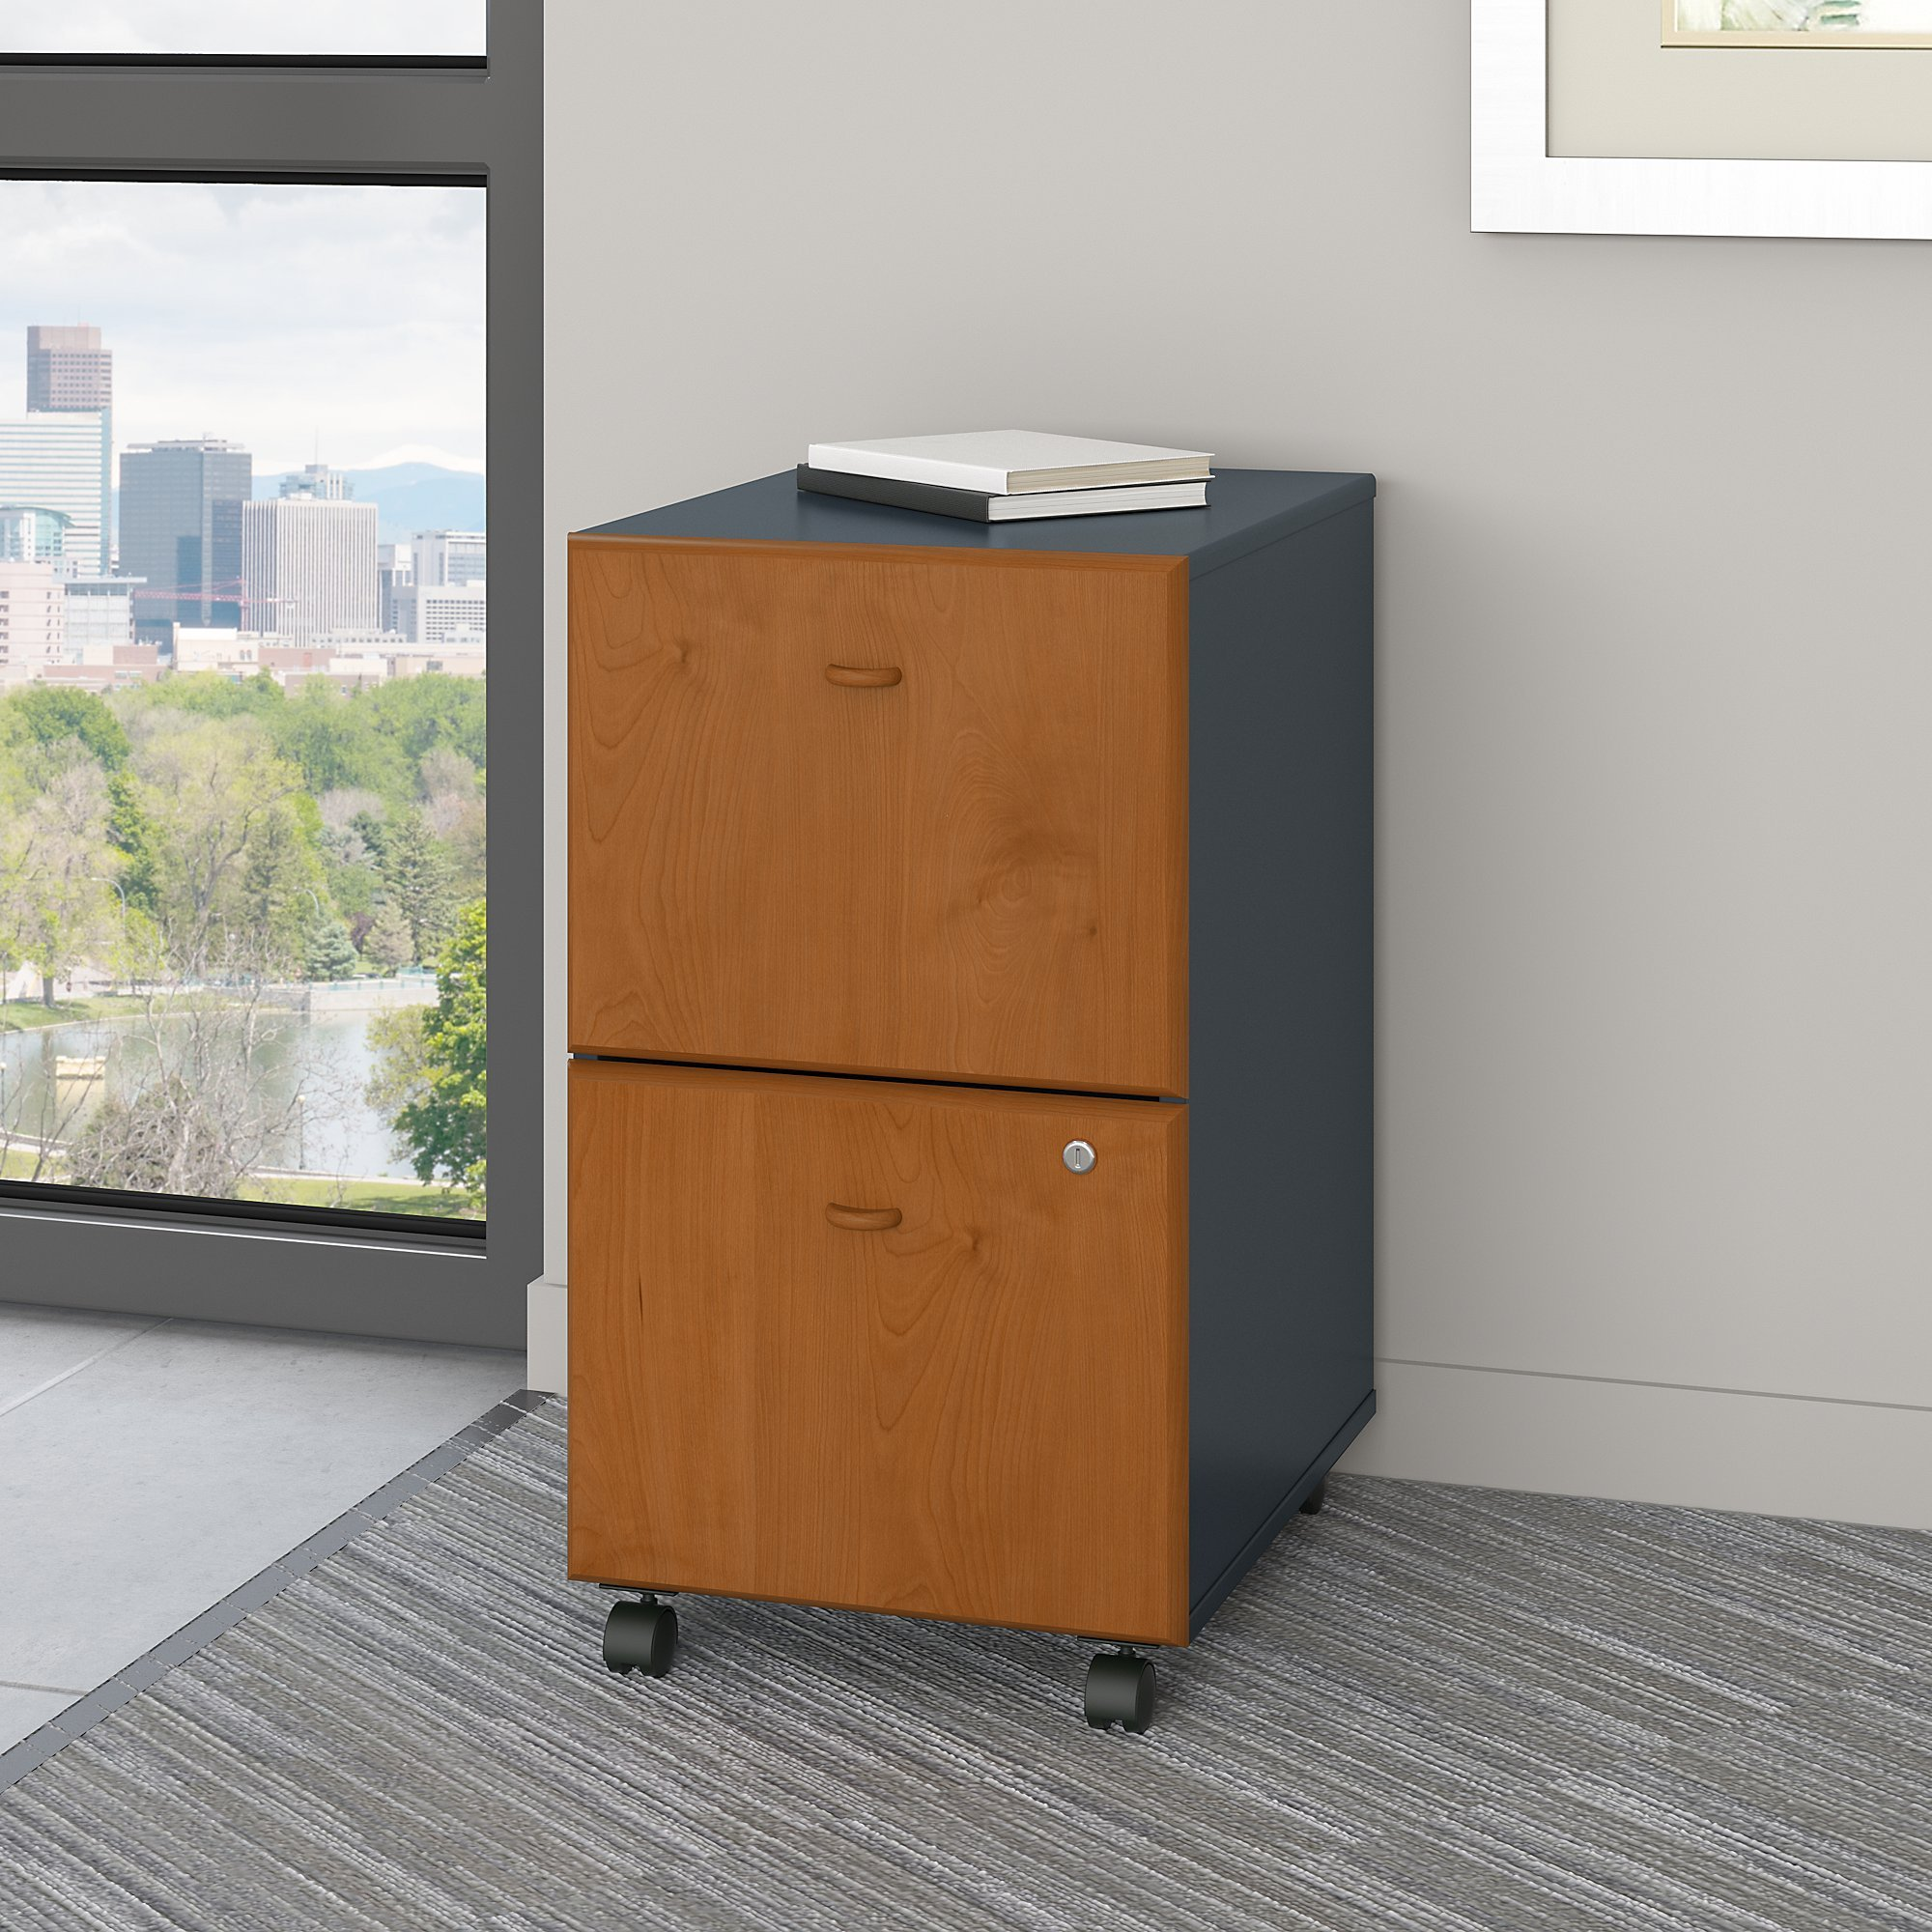 Bush Business Furniture WC57452PSU Series A 2 Drawer Mobile File Cabinet, Natural Cherry/Slate by Bush Business Furniture